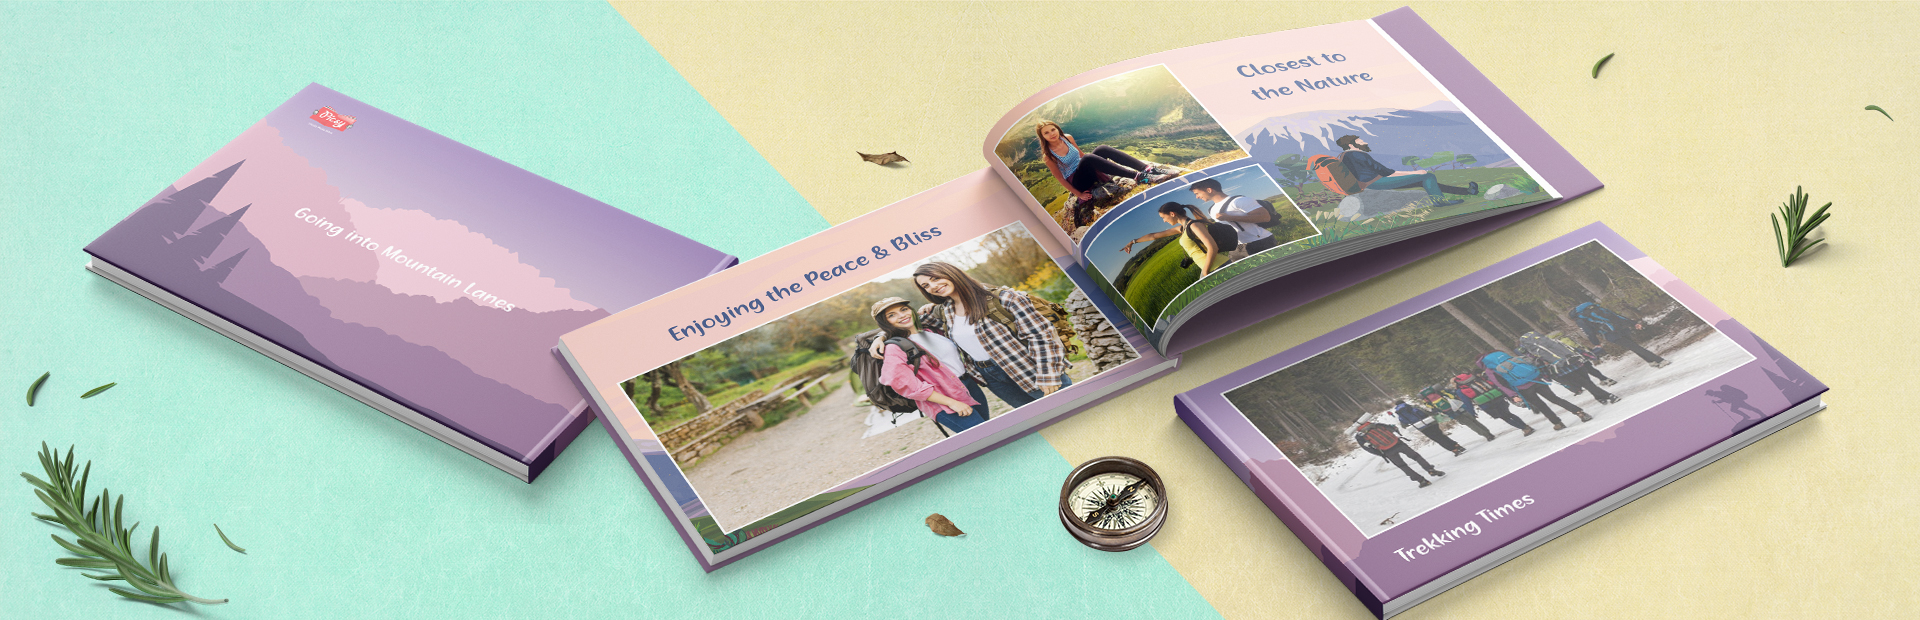 Happy Go Trekking Custom Photo Books